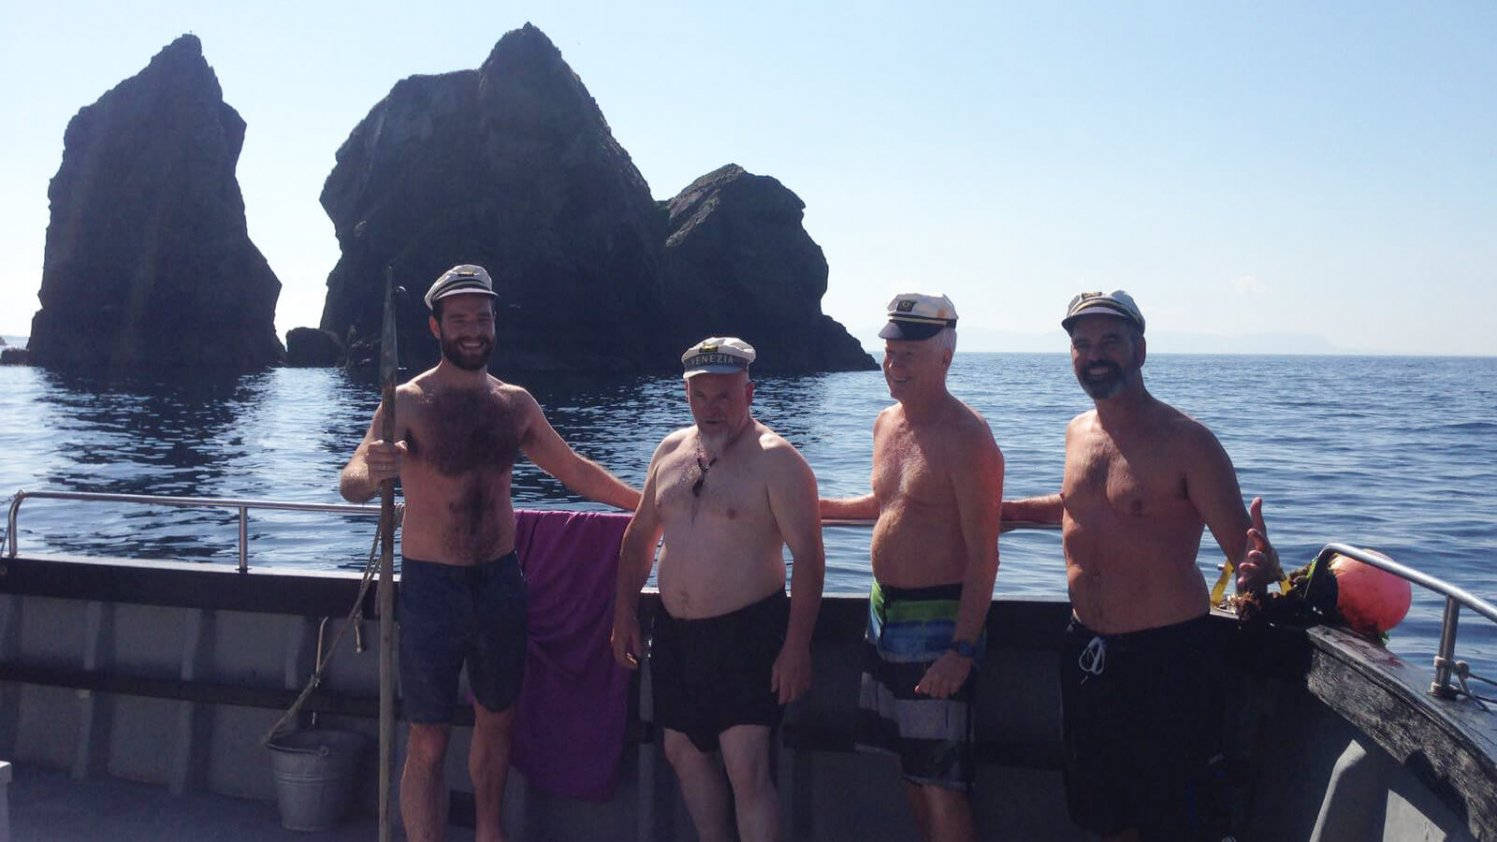 Four men in swimsuits on a boat beside an island